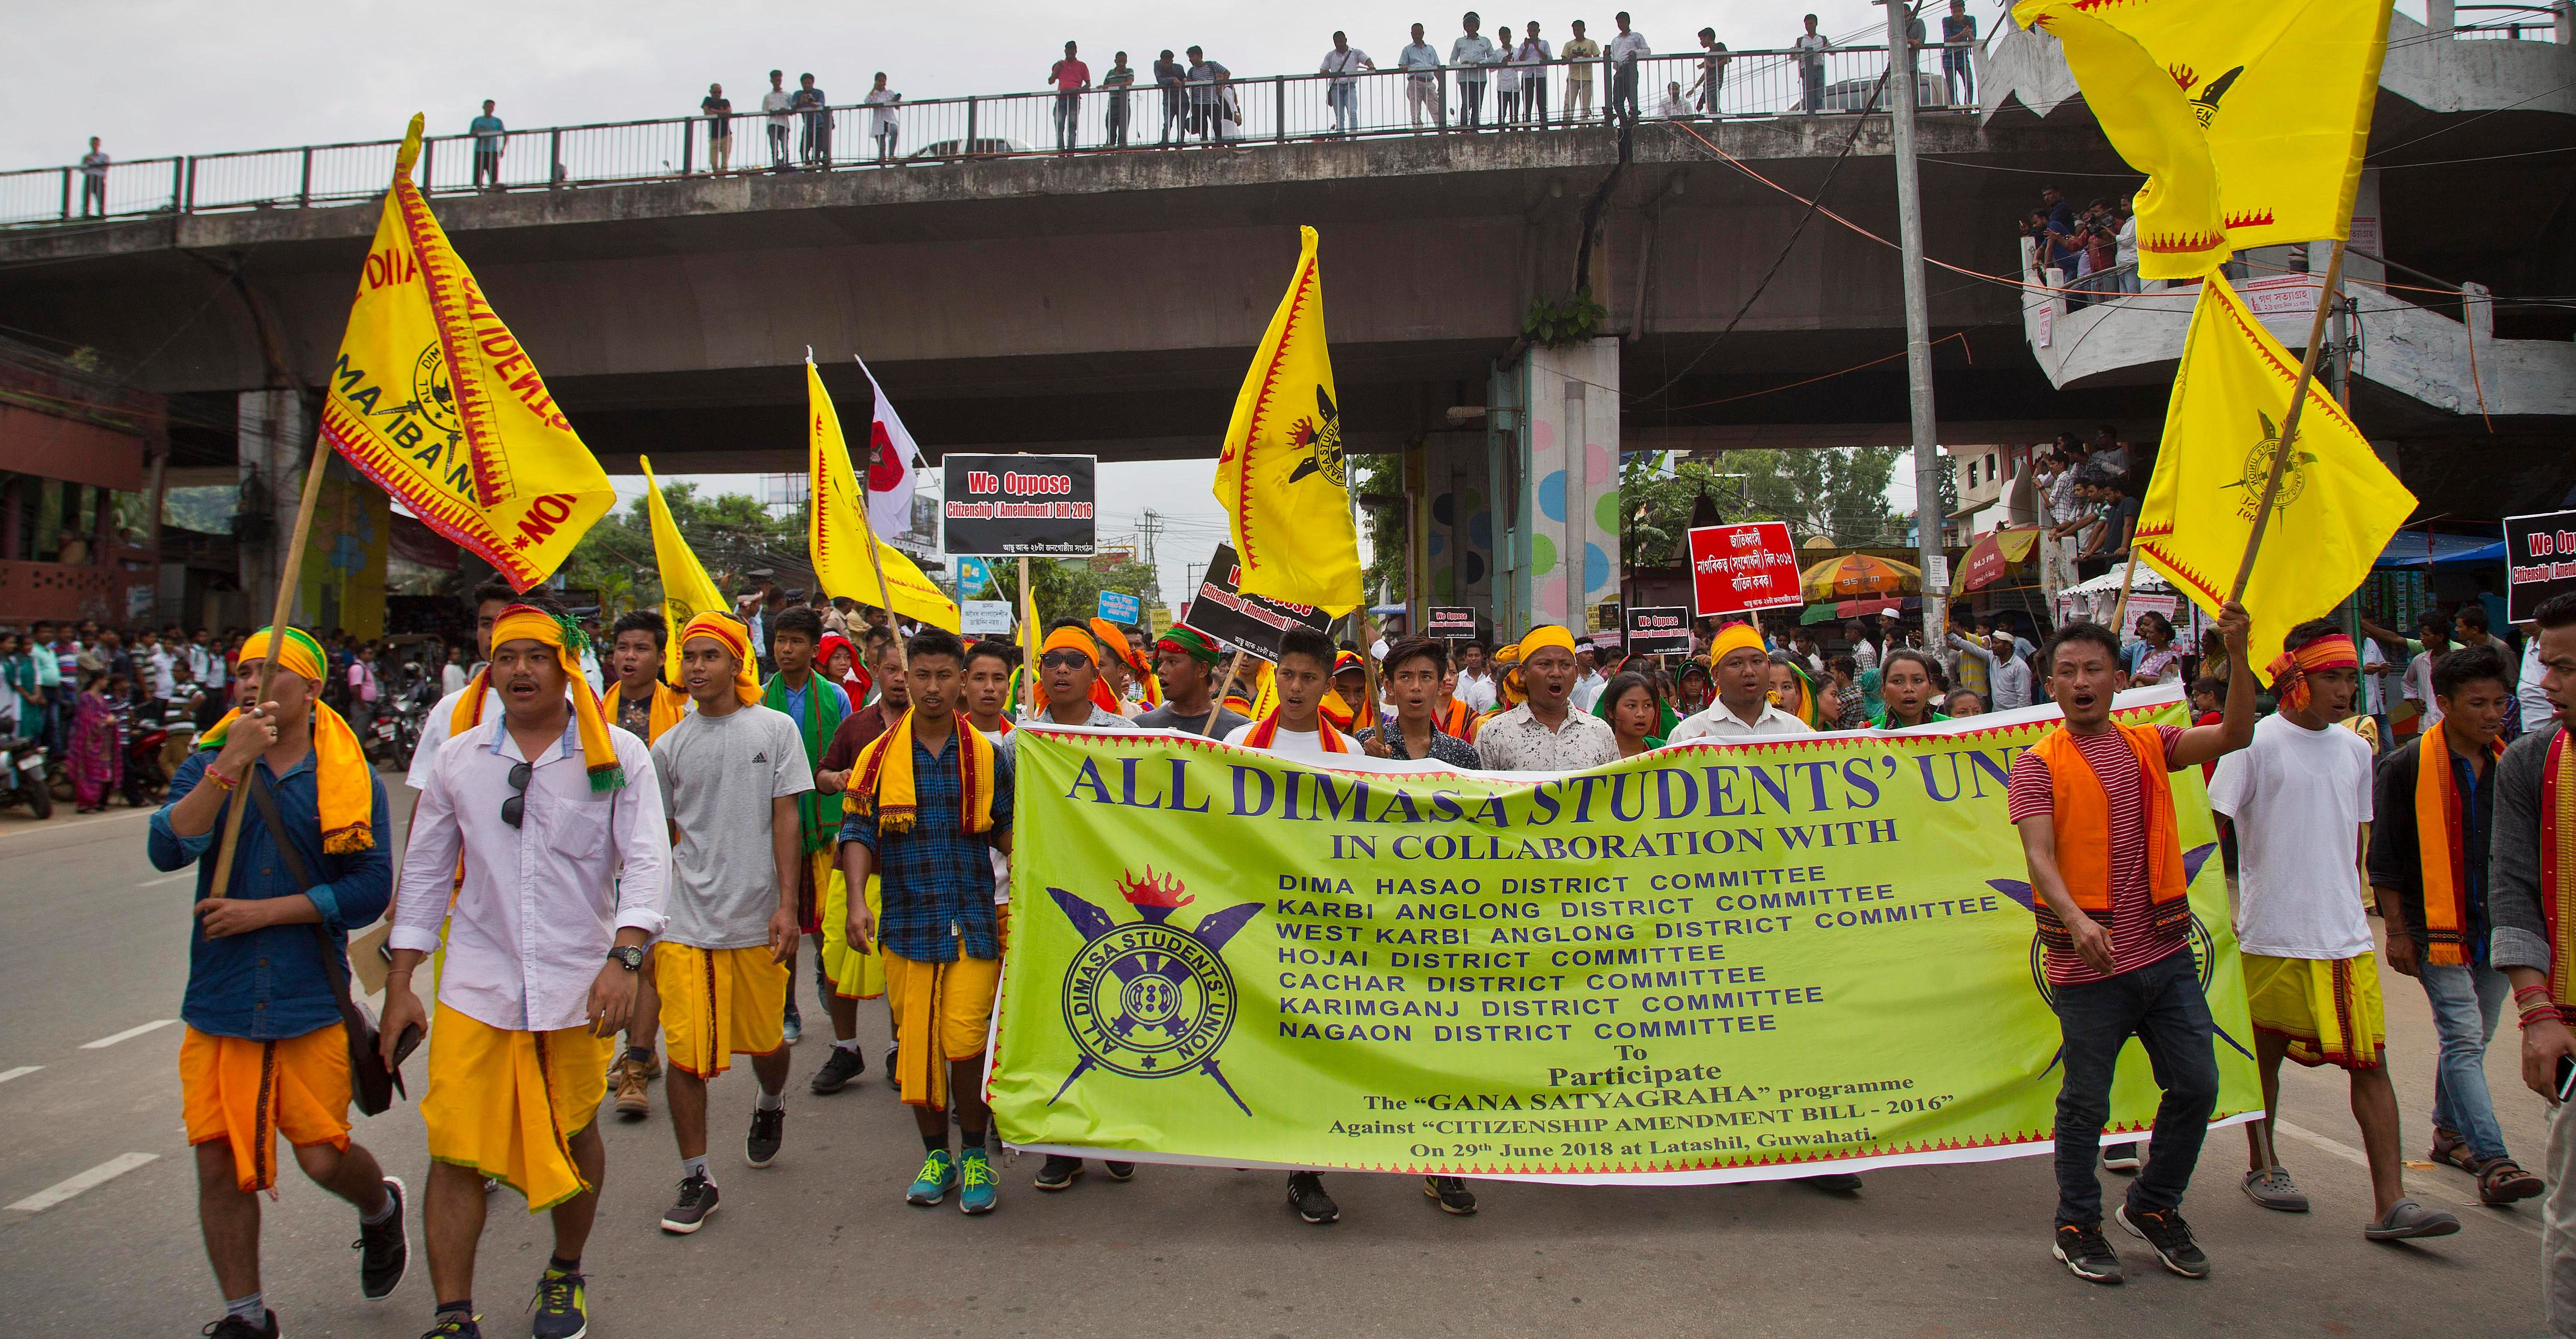 epa06849750 Activists of All Assam Students' Union (AASU), along with 28 other organizations walk during a protest rally against India's Citizenship Amendment Bill 2016 in Guwahati, Assam, India, 29 June 2018. Hundreds of people protesting against a bill by the Indian government that provide citizenship to illegal migrants from Afghanistan, Bangladesh, and Pakistan, who are of Hindu, Sikh, Buddhist, Jain, Parsi, or Christian but doesn?t have a provision for Muslim sects, a news report said.